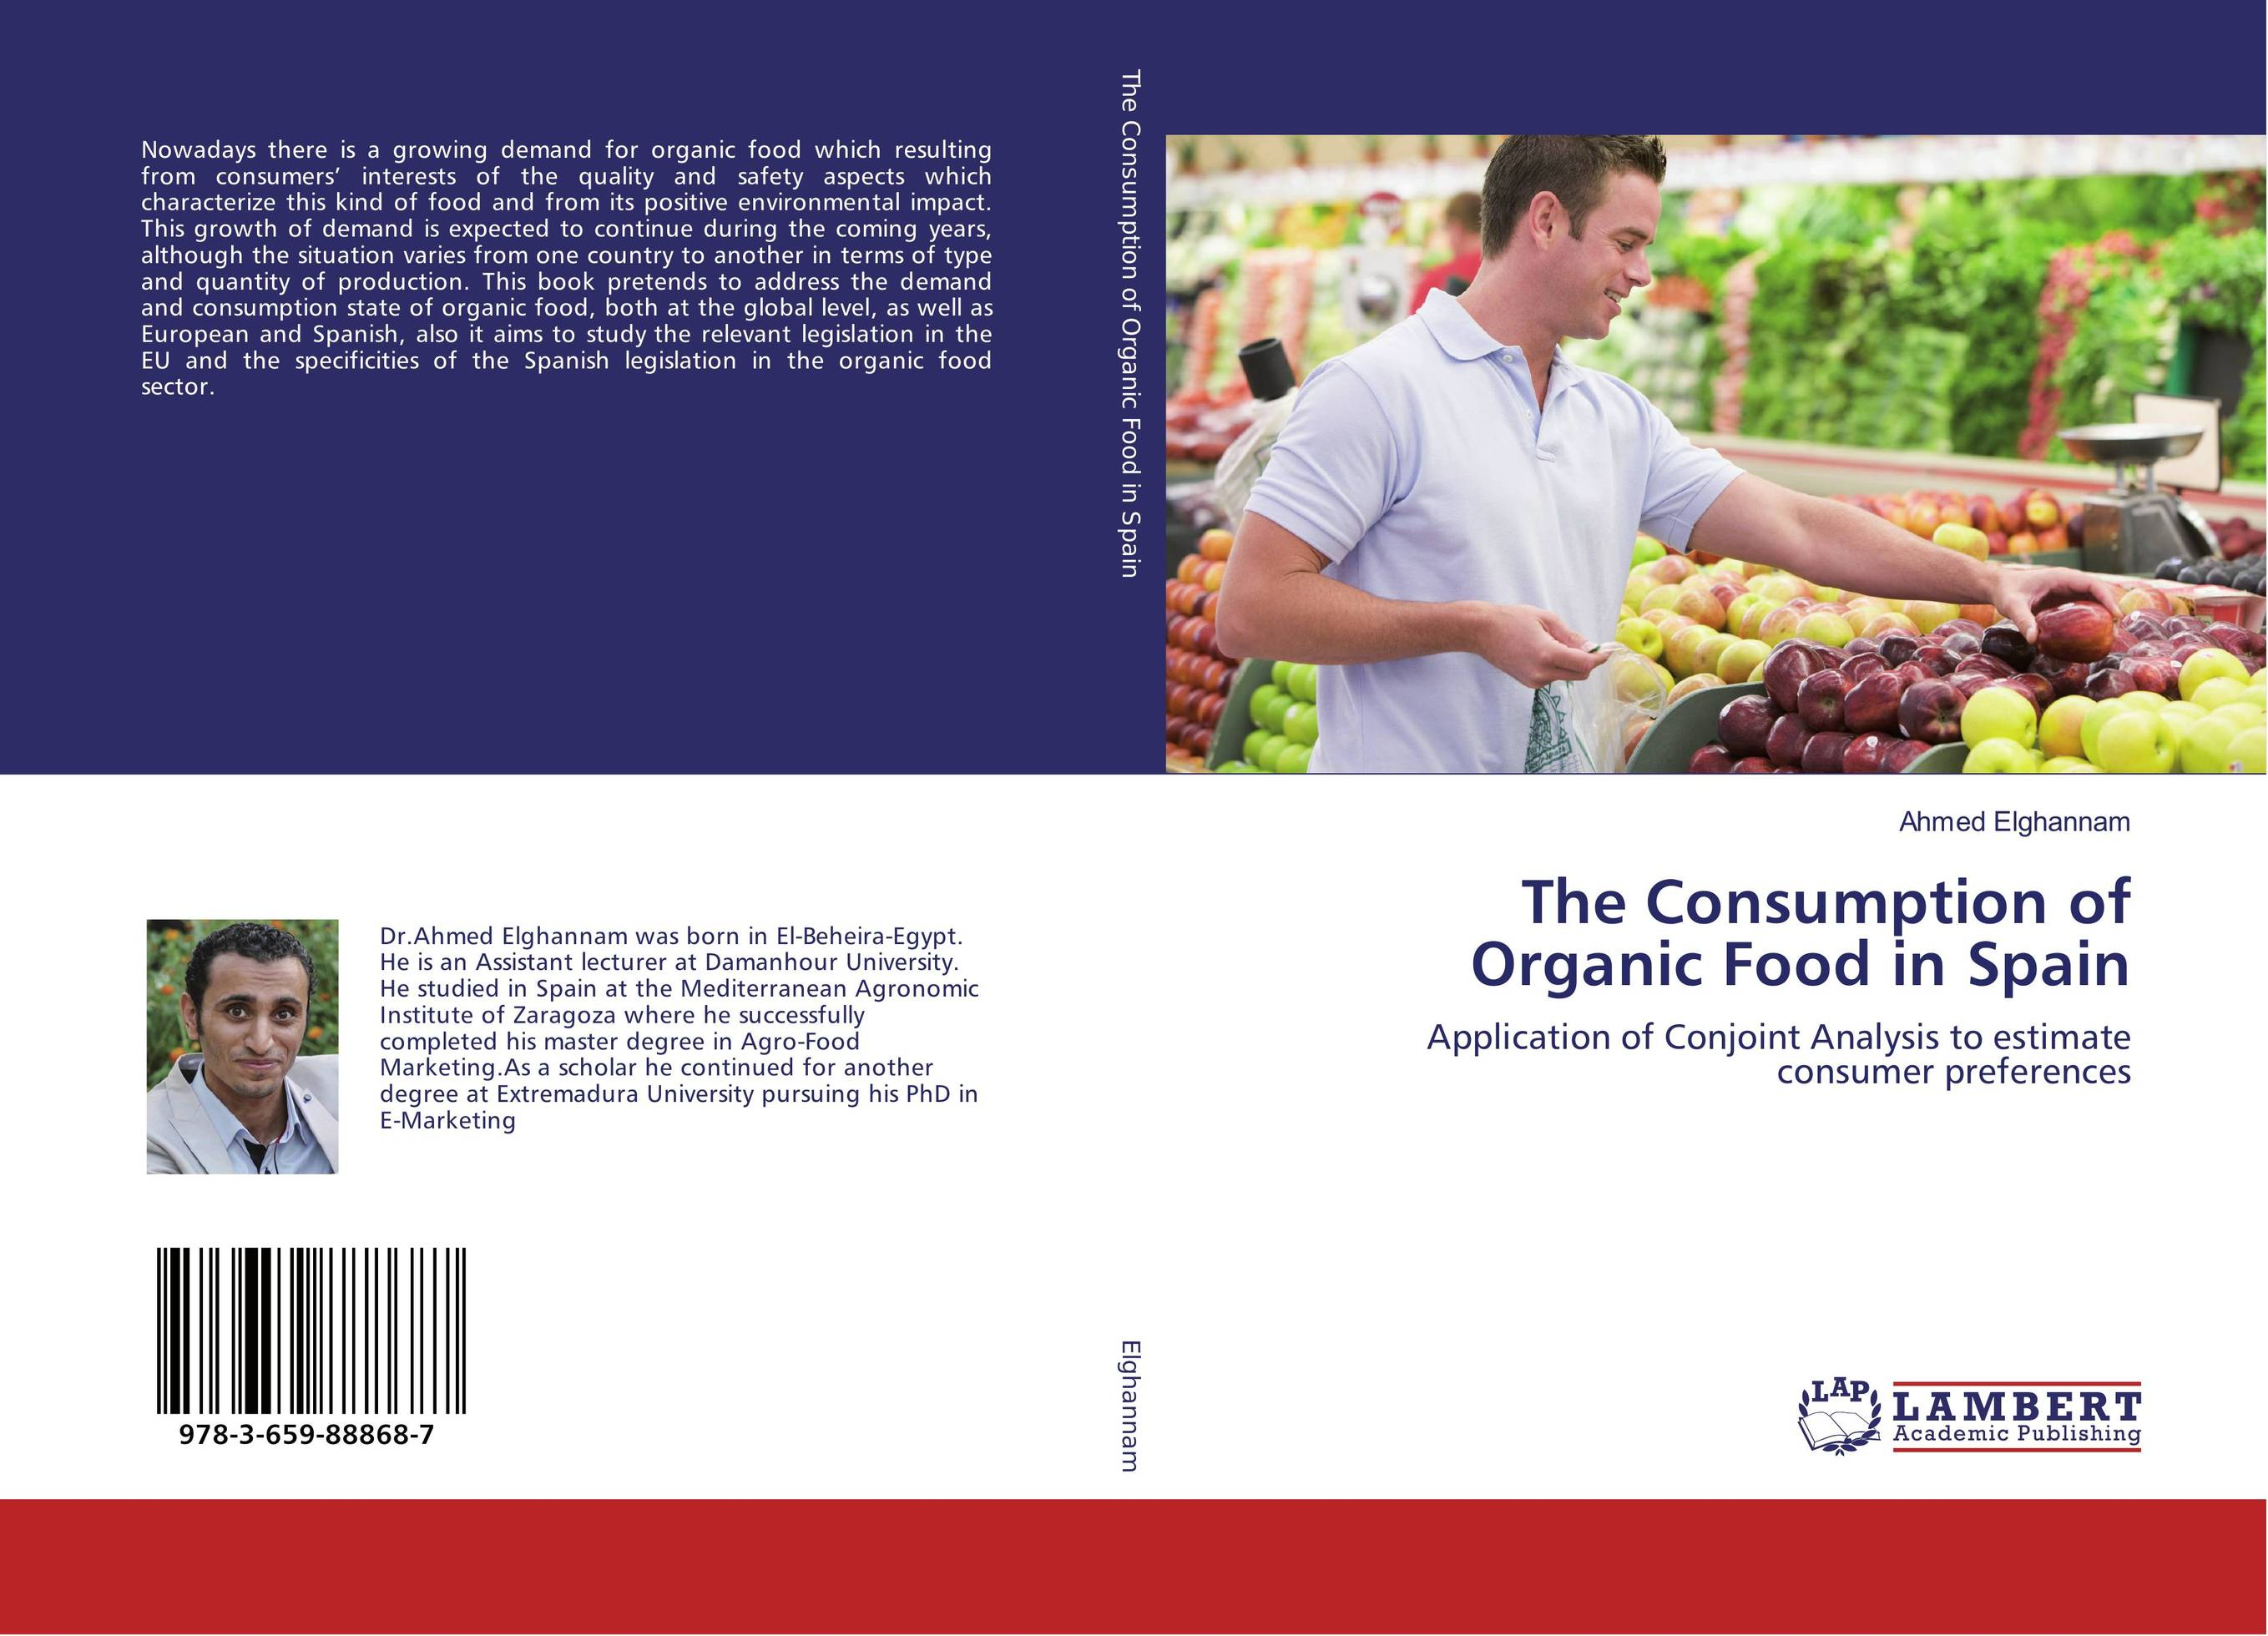 The Consumption of Organic Food in Spain